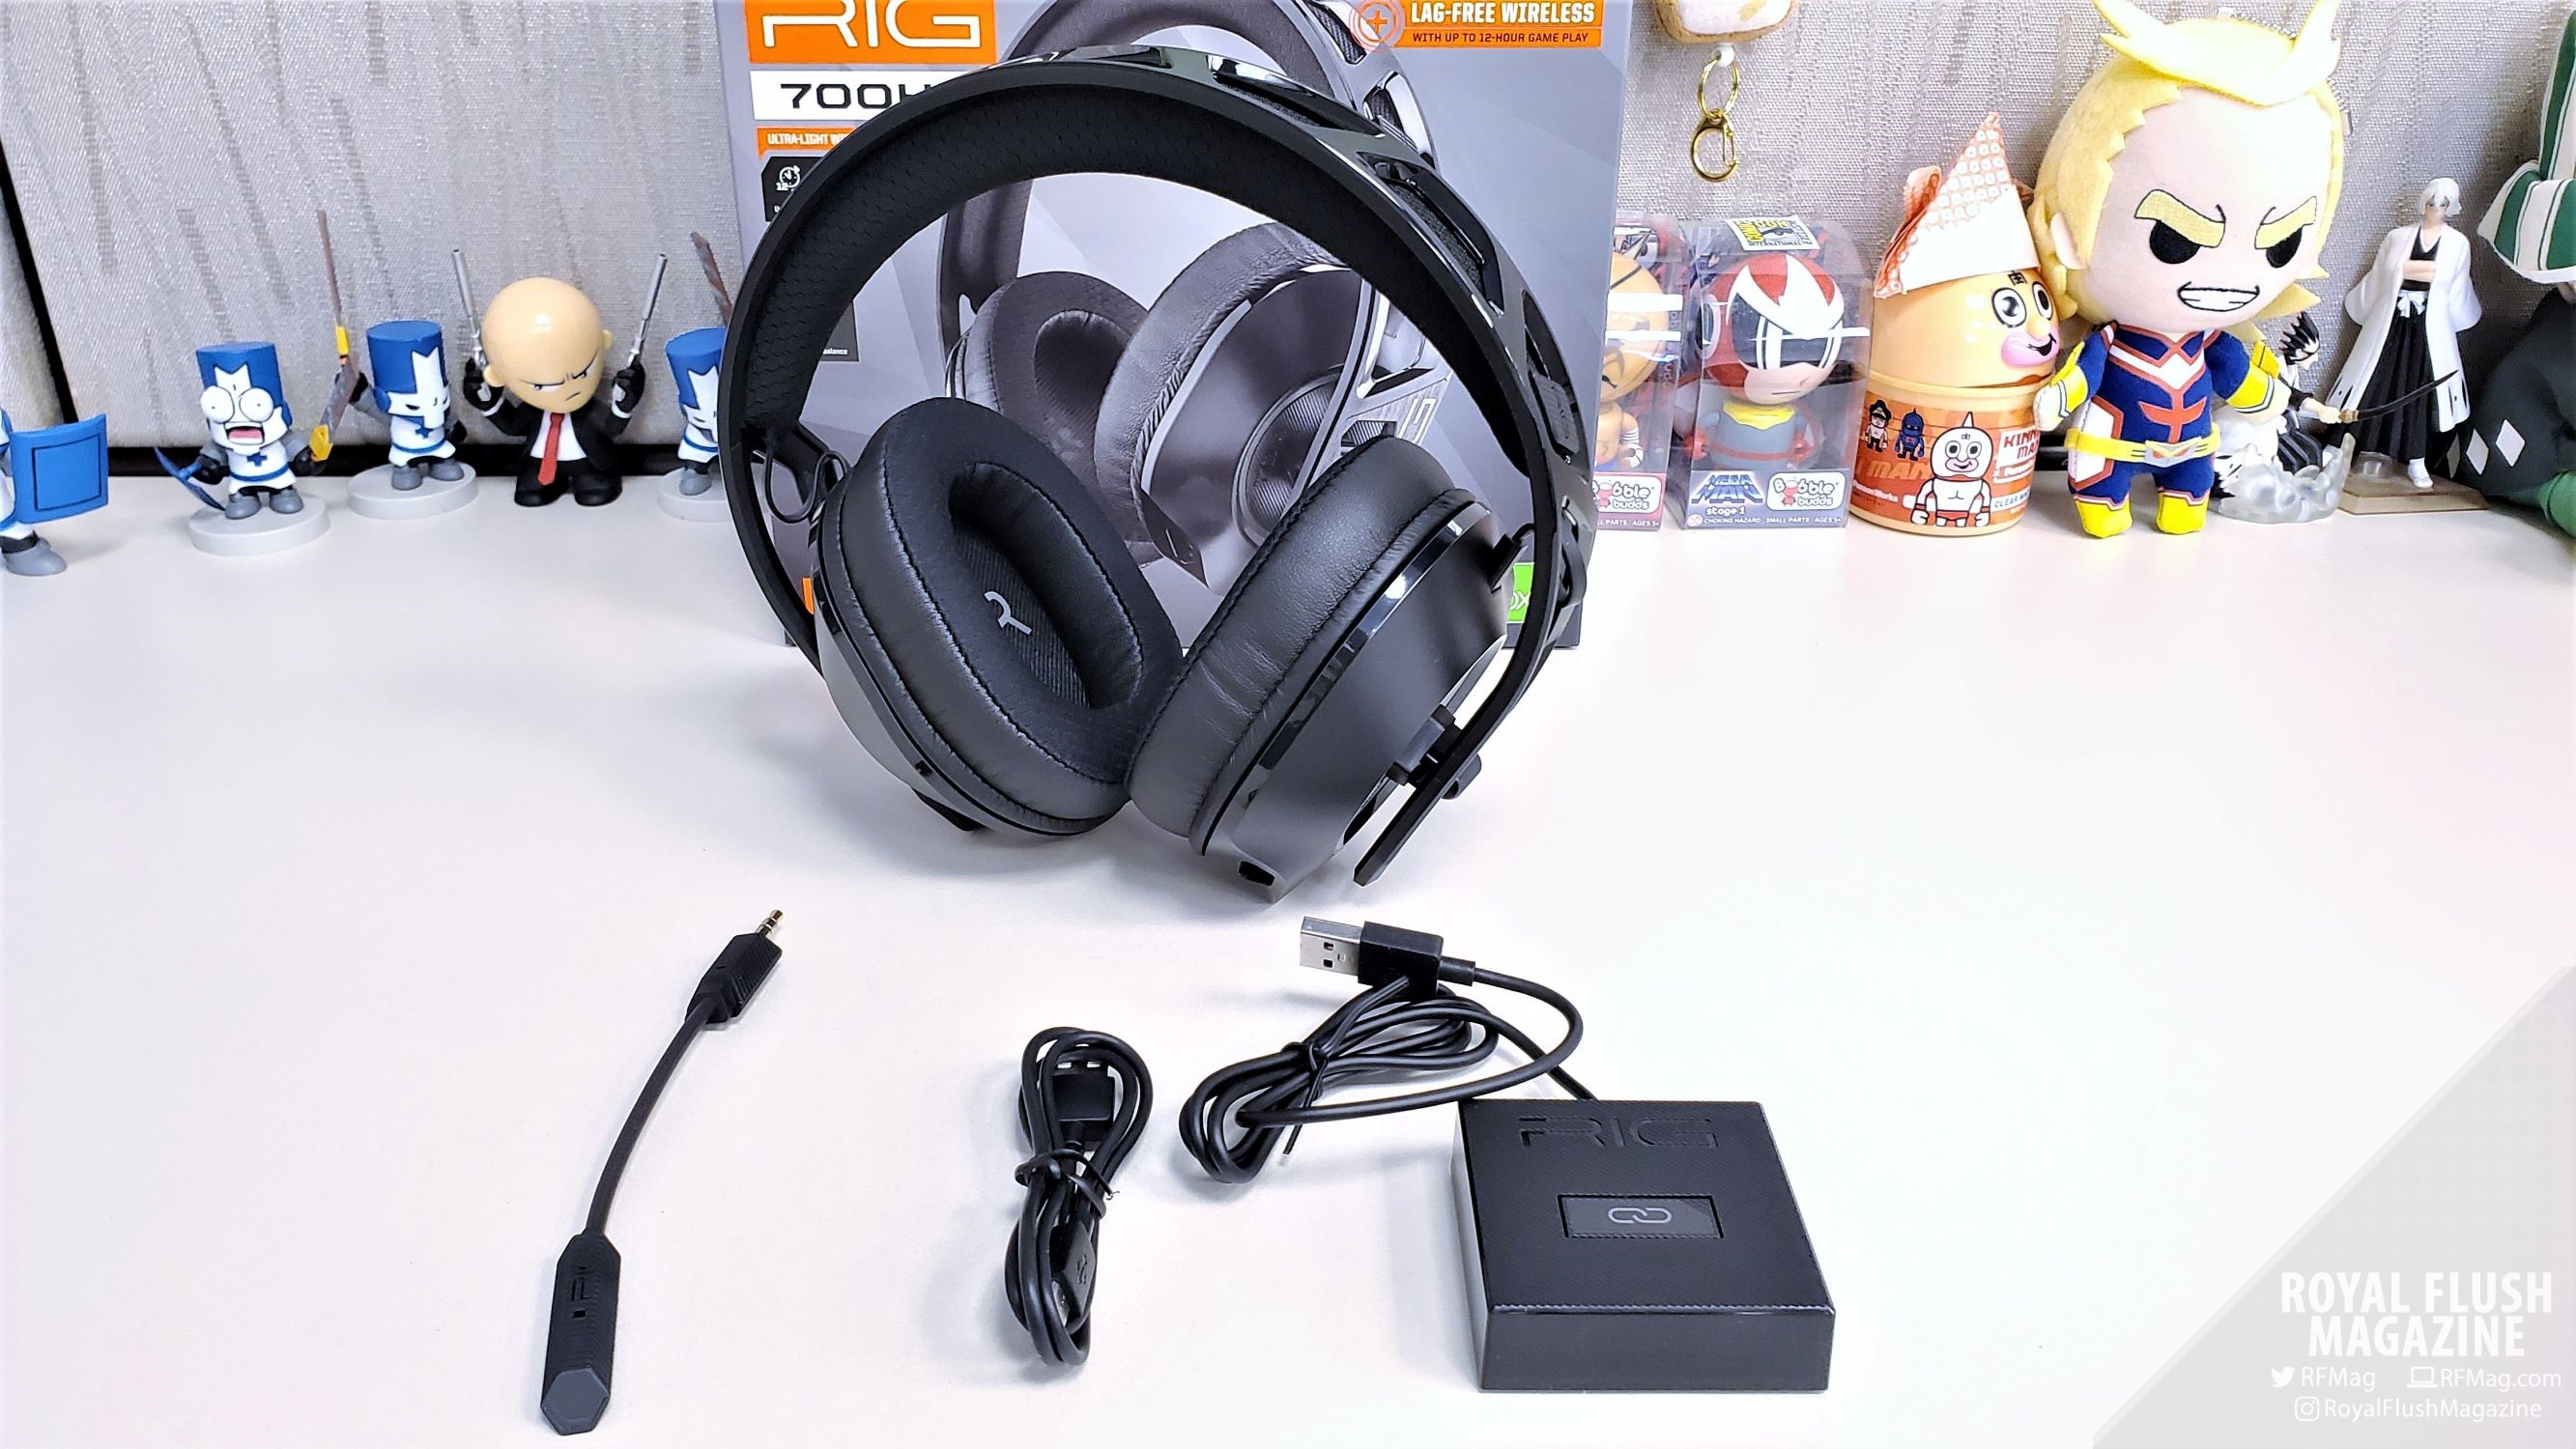 Review Plantronics Rig 700hx Wireless Headset For Xbox One Pc